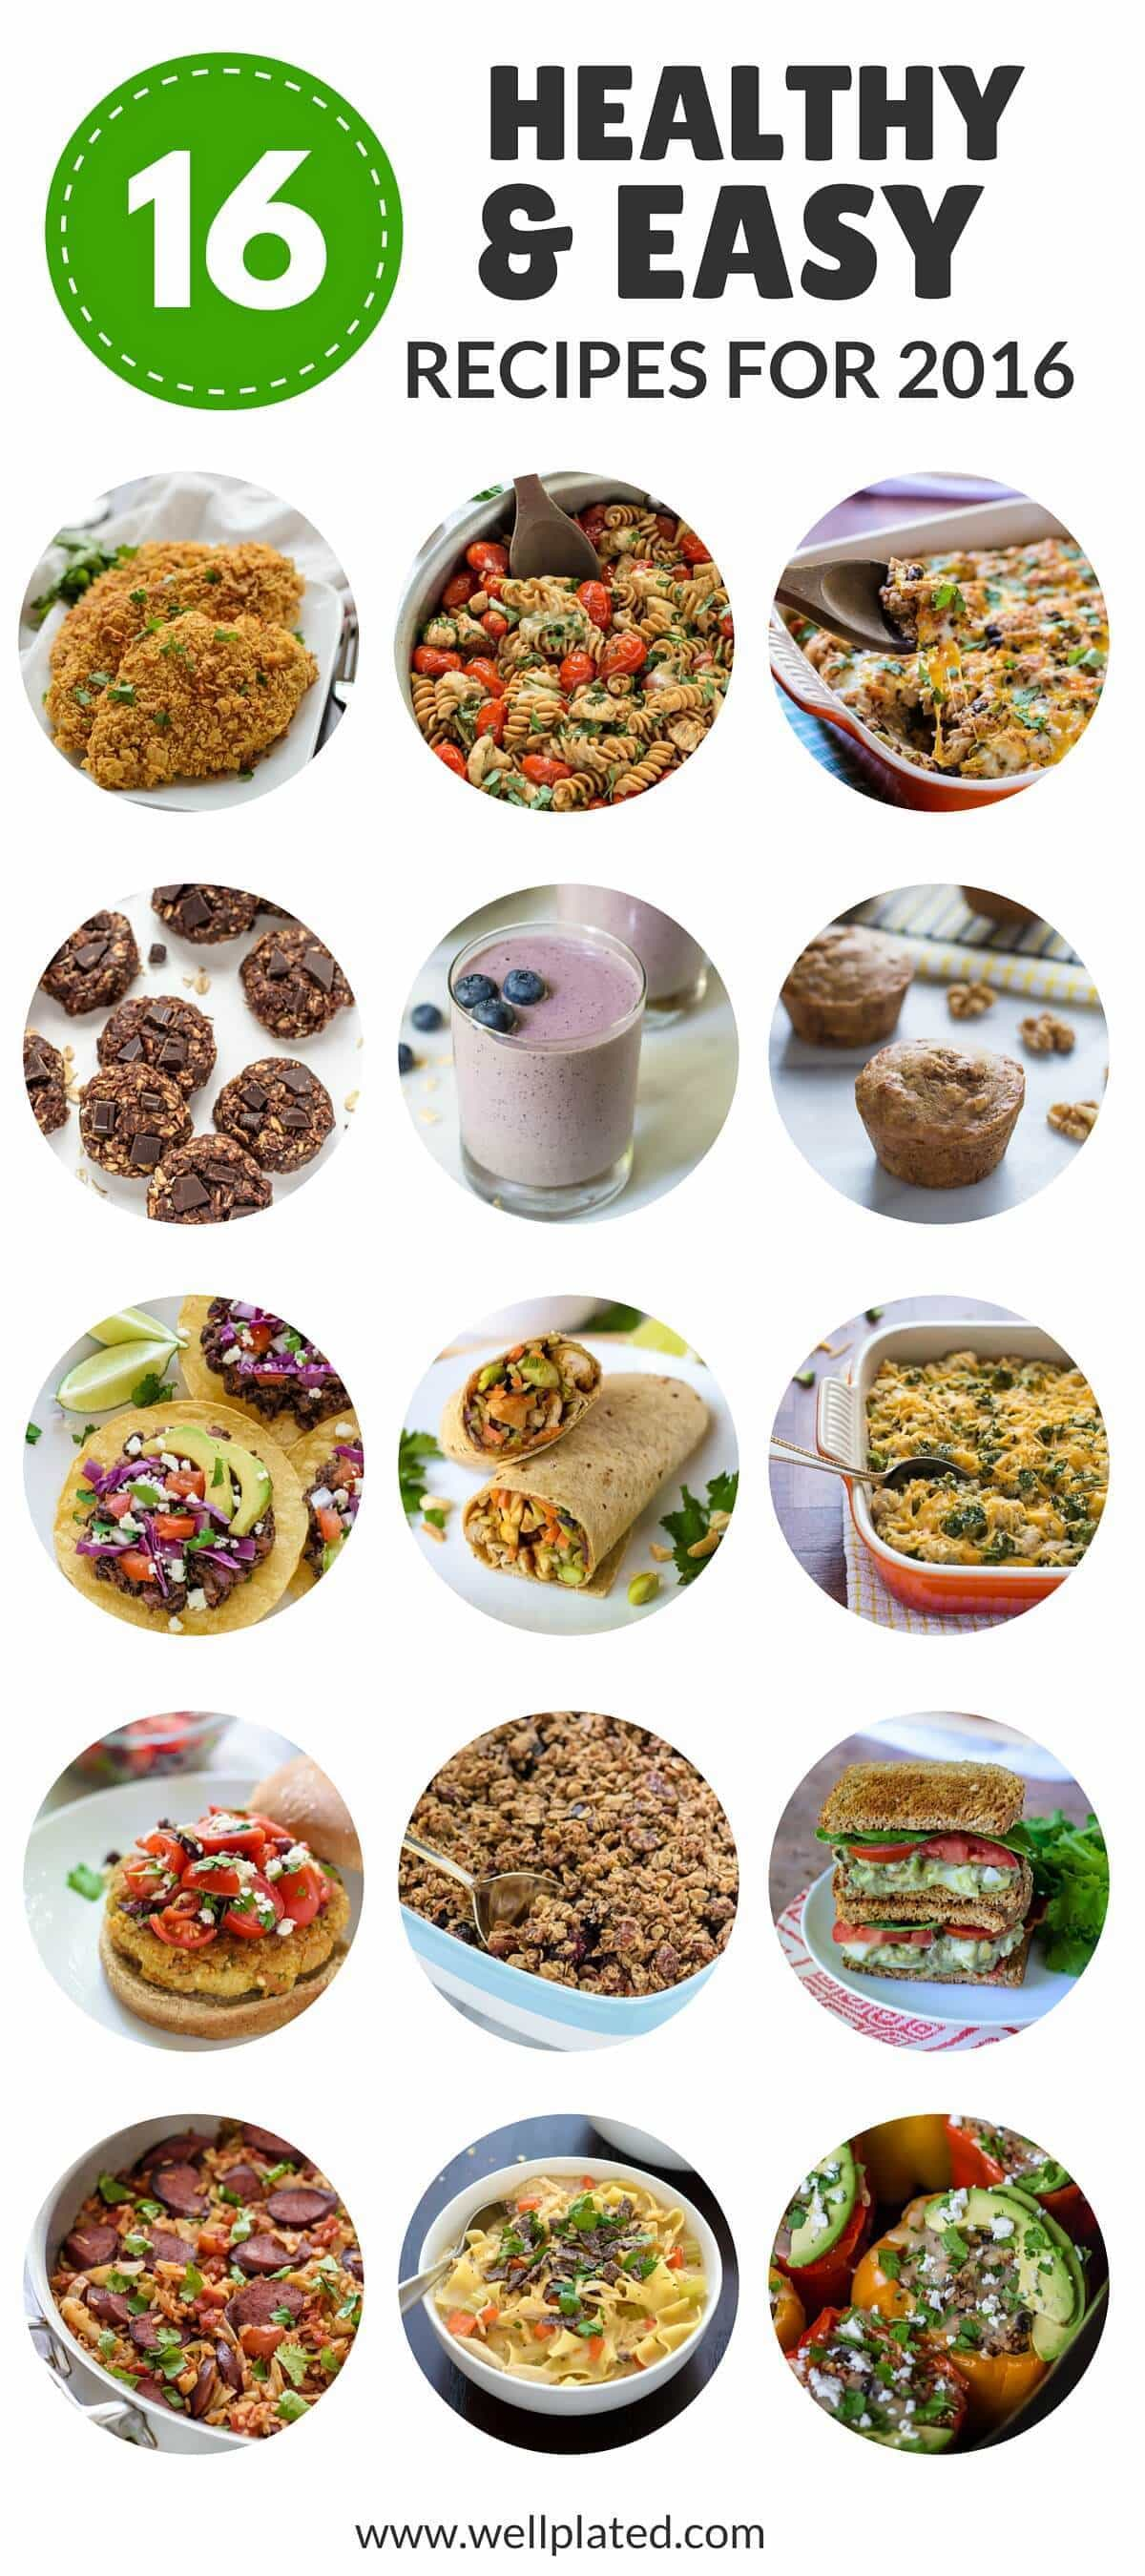 16 Easy Healthy Recipes To Try In 2016 Well Plated By Erin